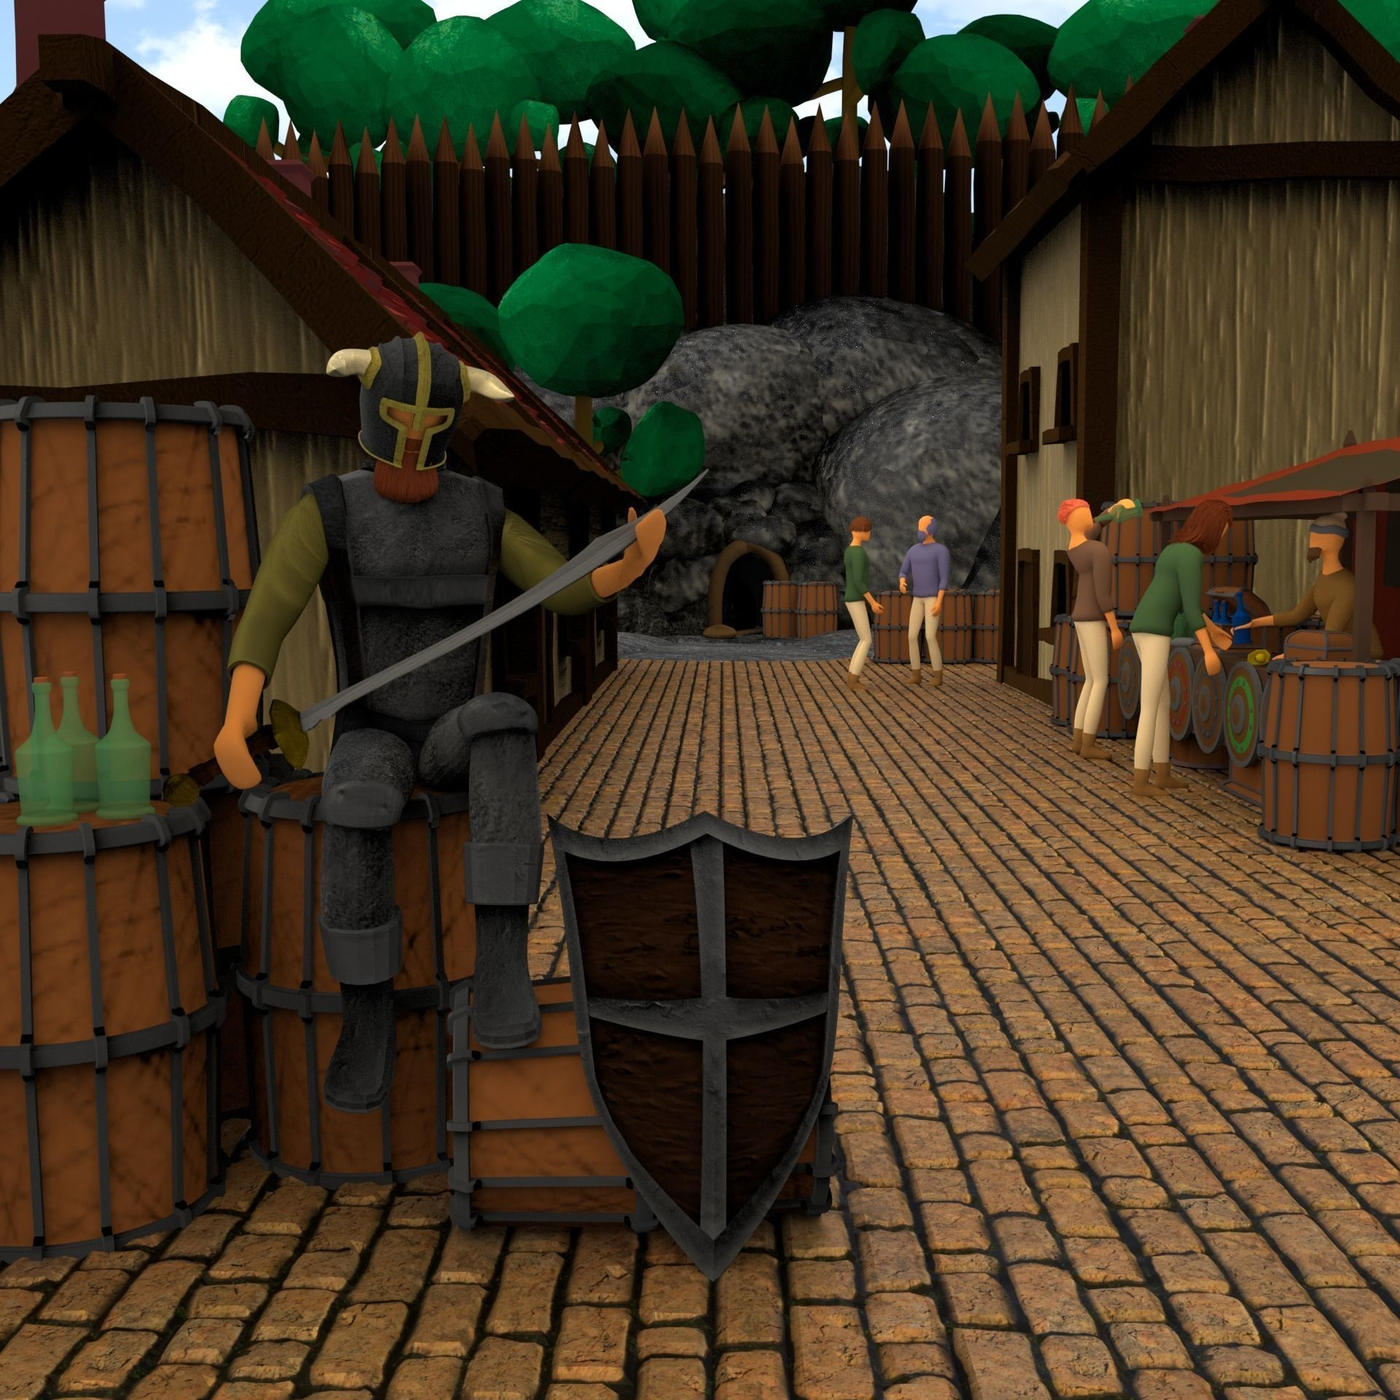 Guard In a Village Environment